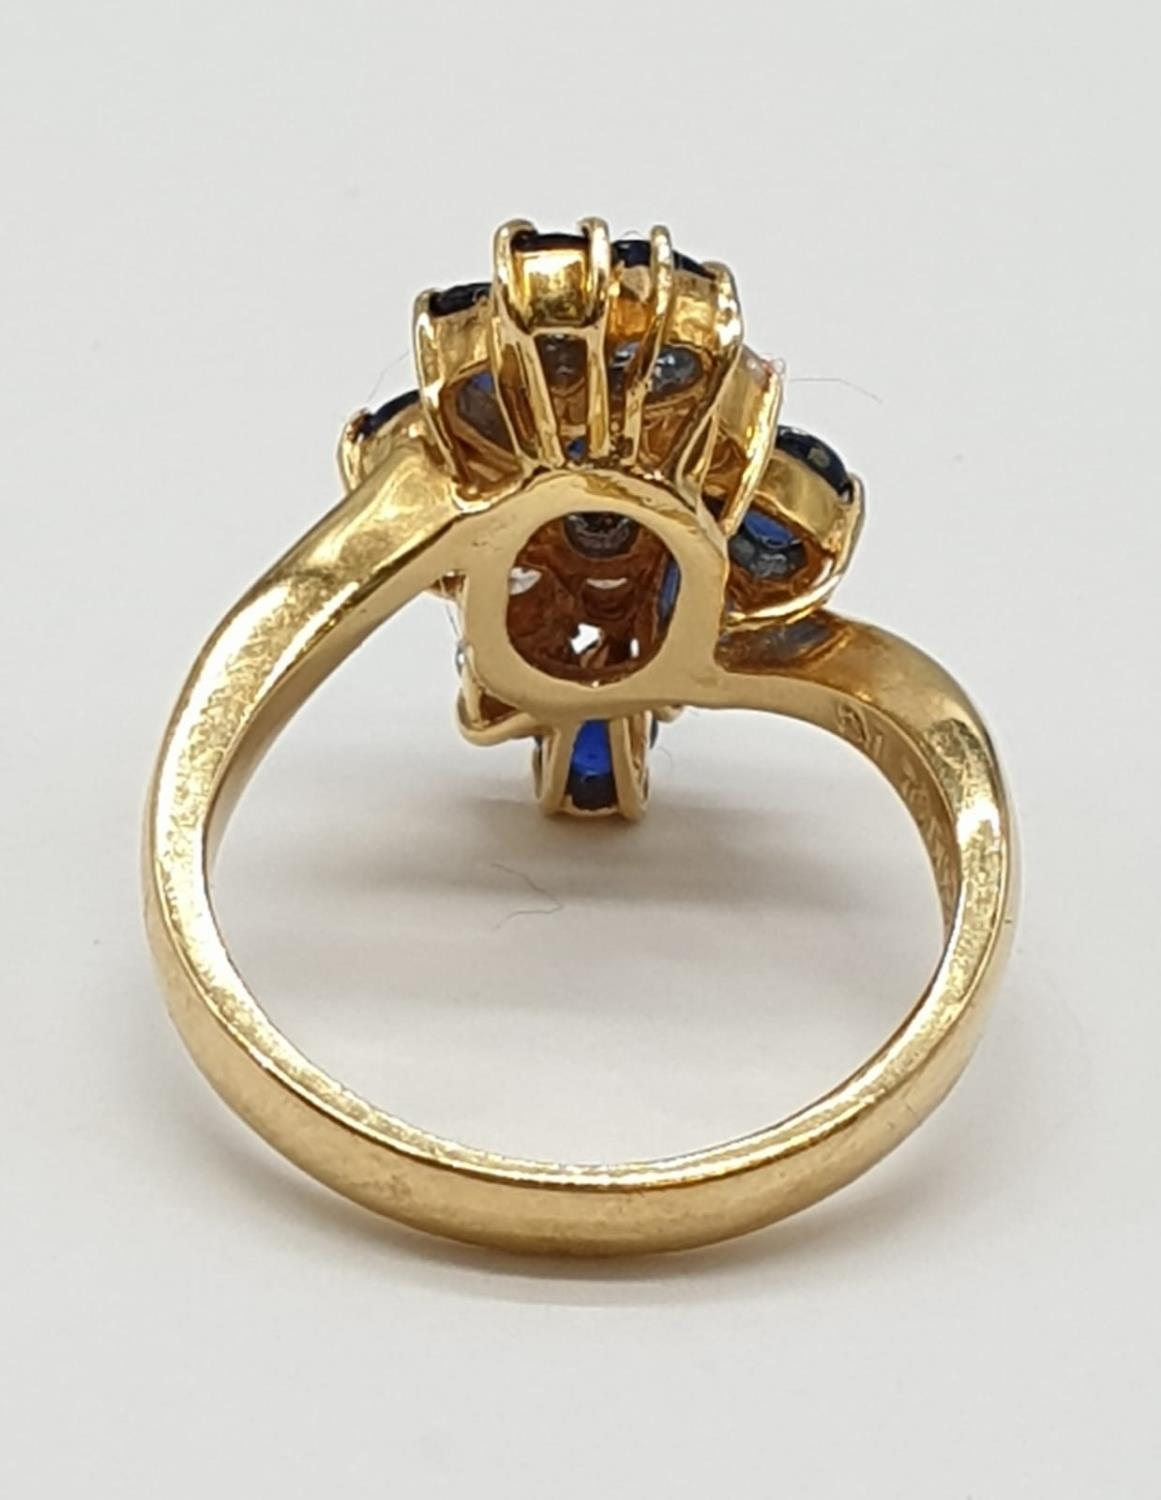 18ct Yellow Gold Cross Over Diamond and Sapphire Ring, Ring Size K, Weight 5.8g - Image 4 of 6